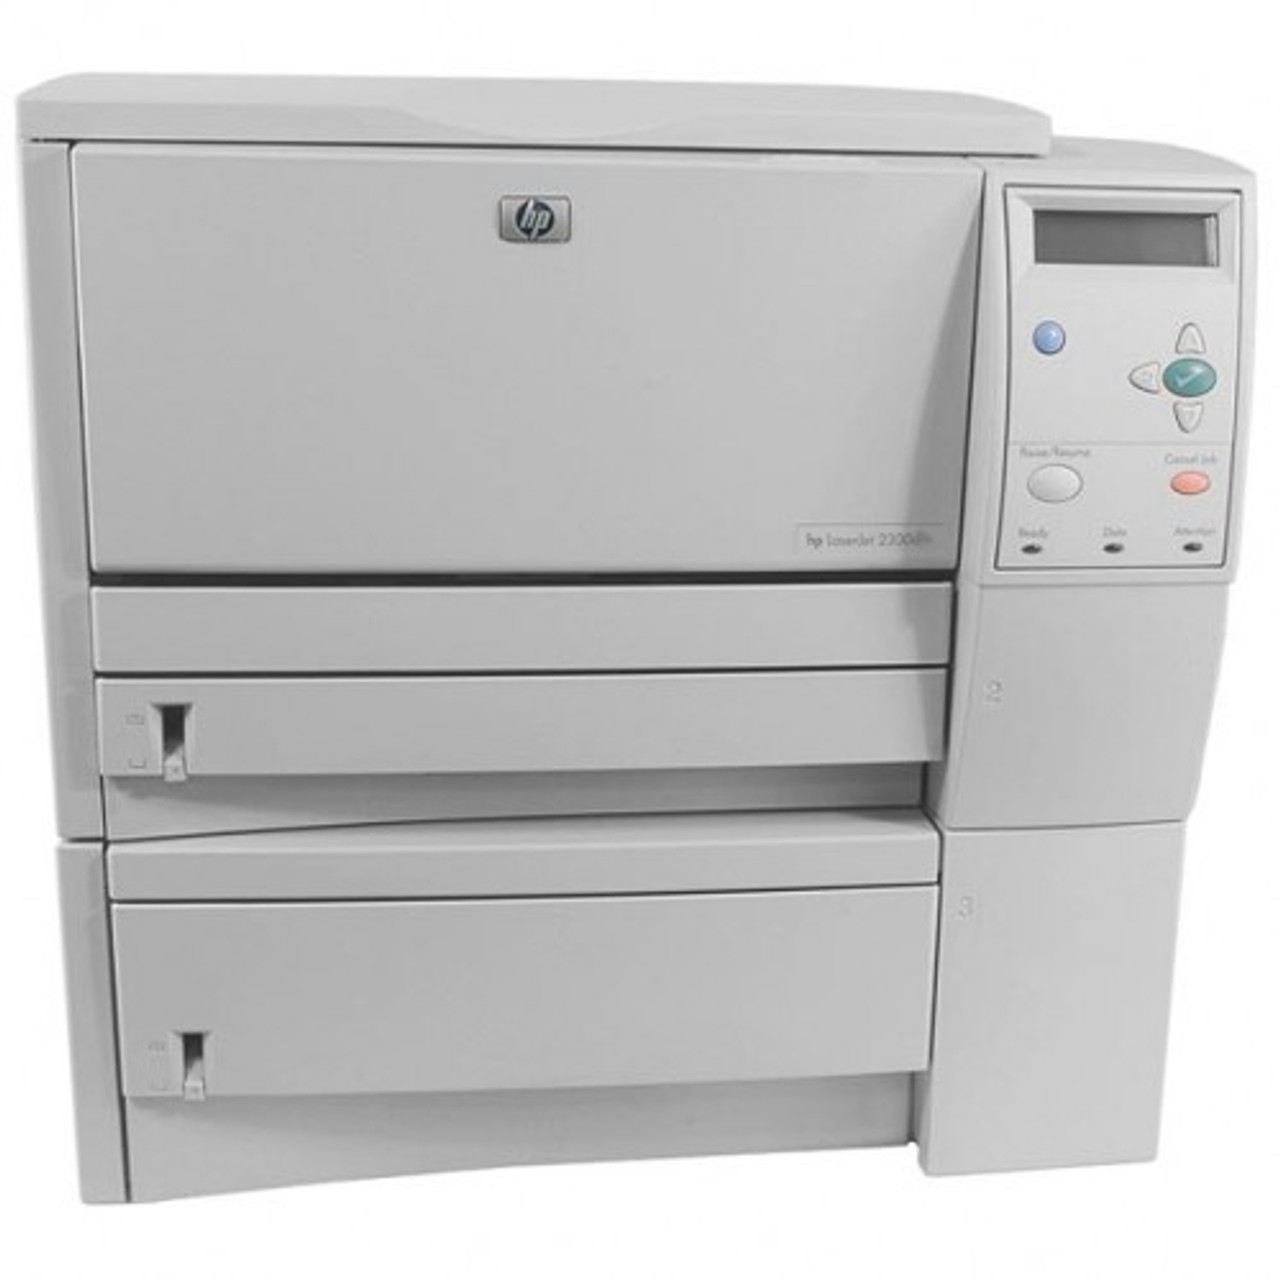 HP LaserJet 2300TN - Q2473A - HP Laser Printer for sale